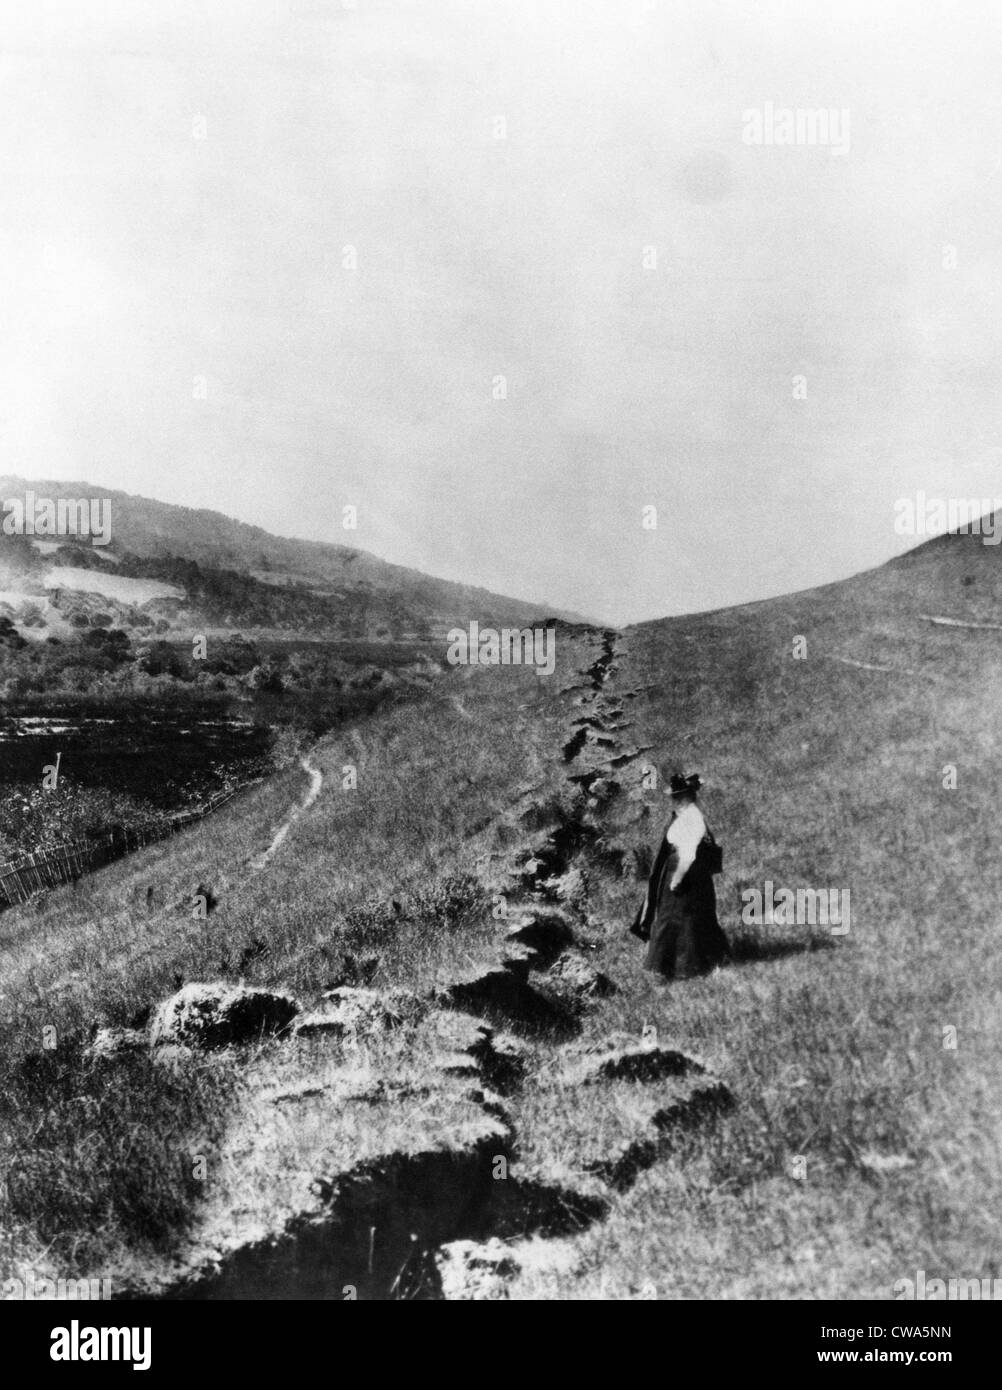 The San Andreas fault in Olema, California after the 1906 ...